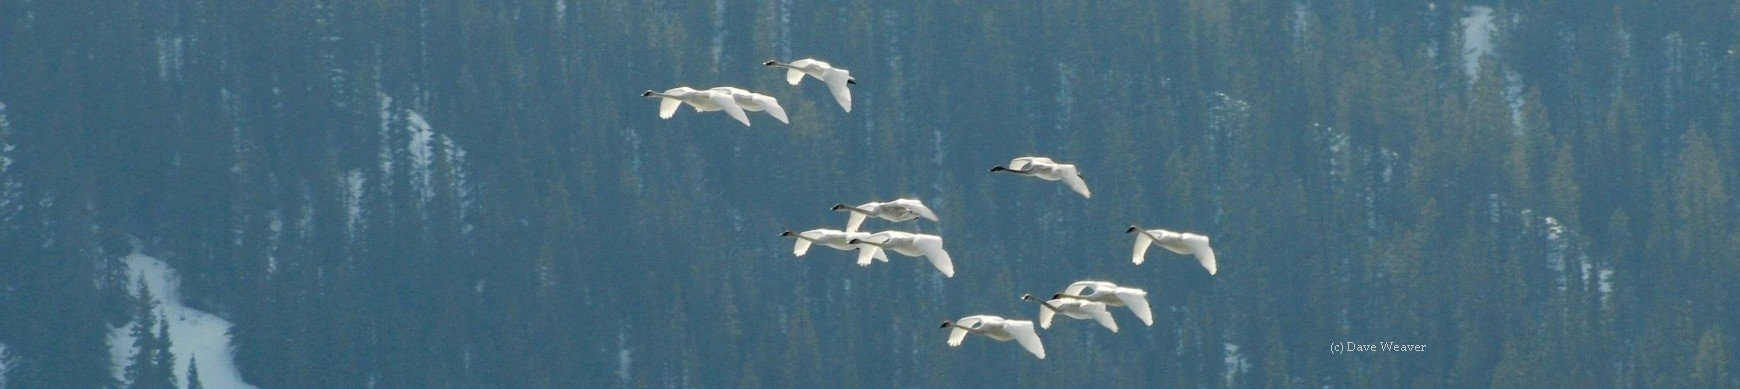 The Trumpeter Swan Society has links to information about Canadian Trumpeter Swans